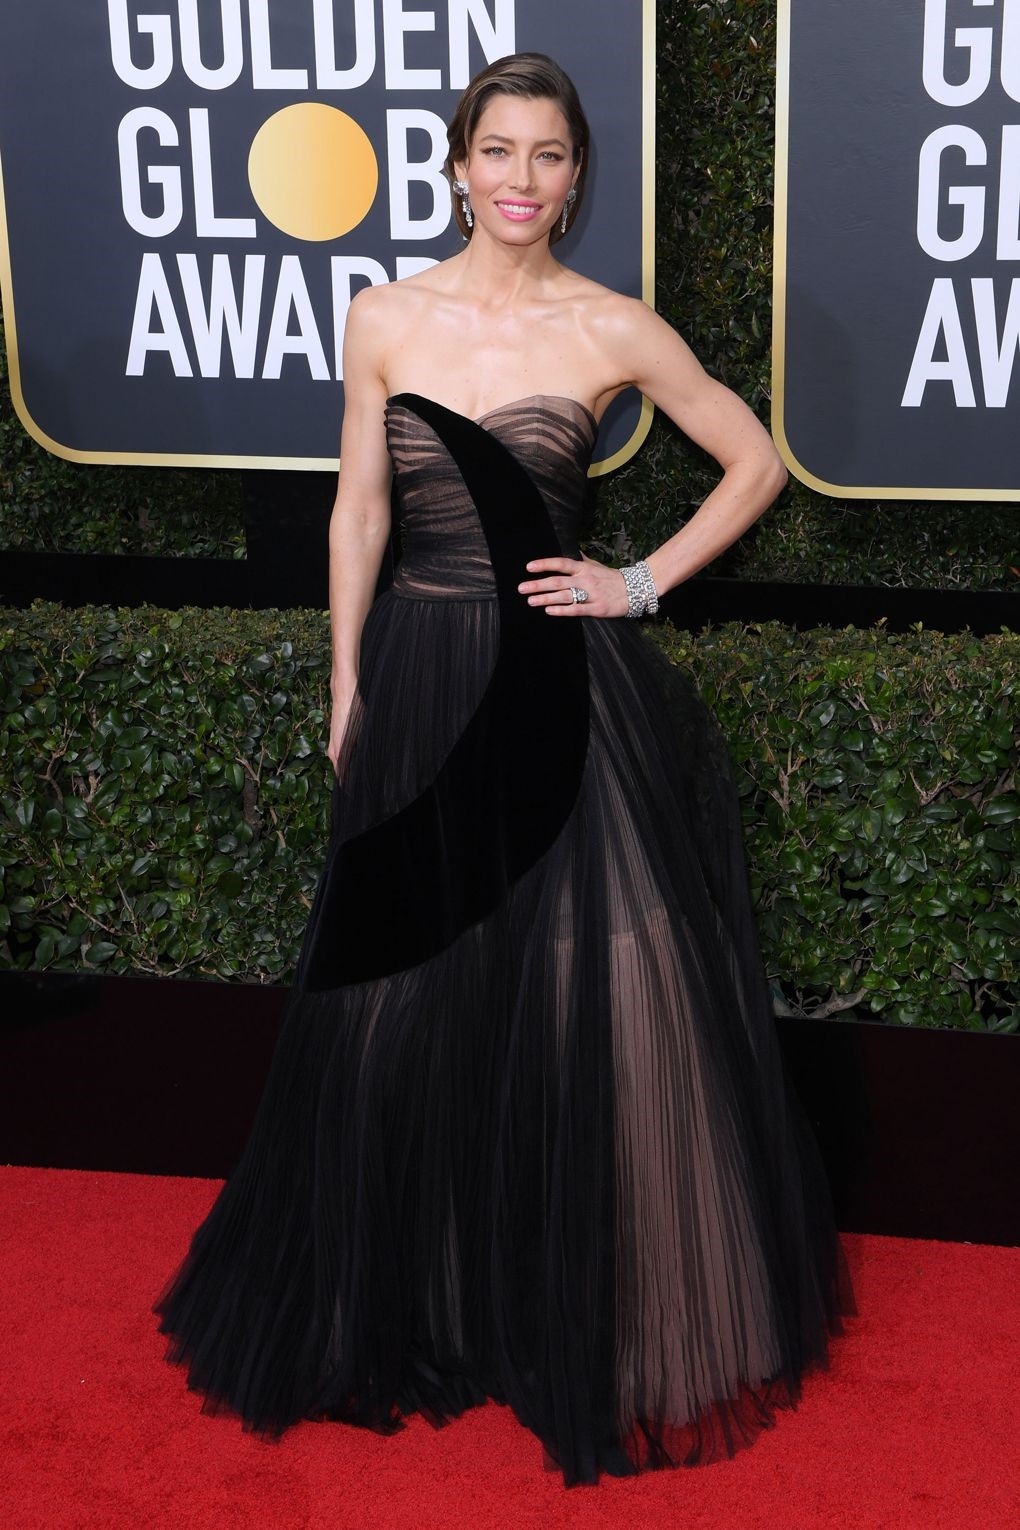 Jessica Biel looked stunning in a Christian Dior gown showing her support for times up movement. golden globes 2018 JD's top 13 red carpet looks of Golden Globes 2018 4